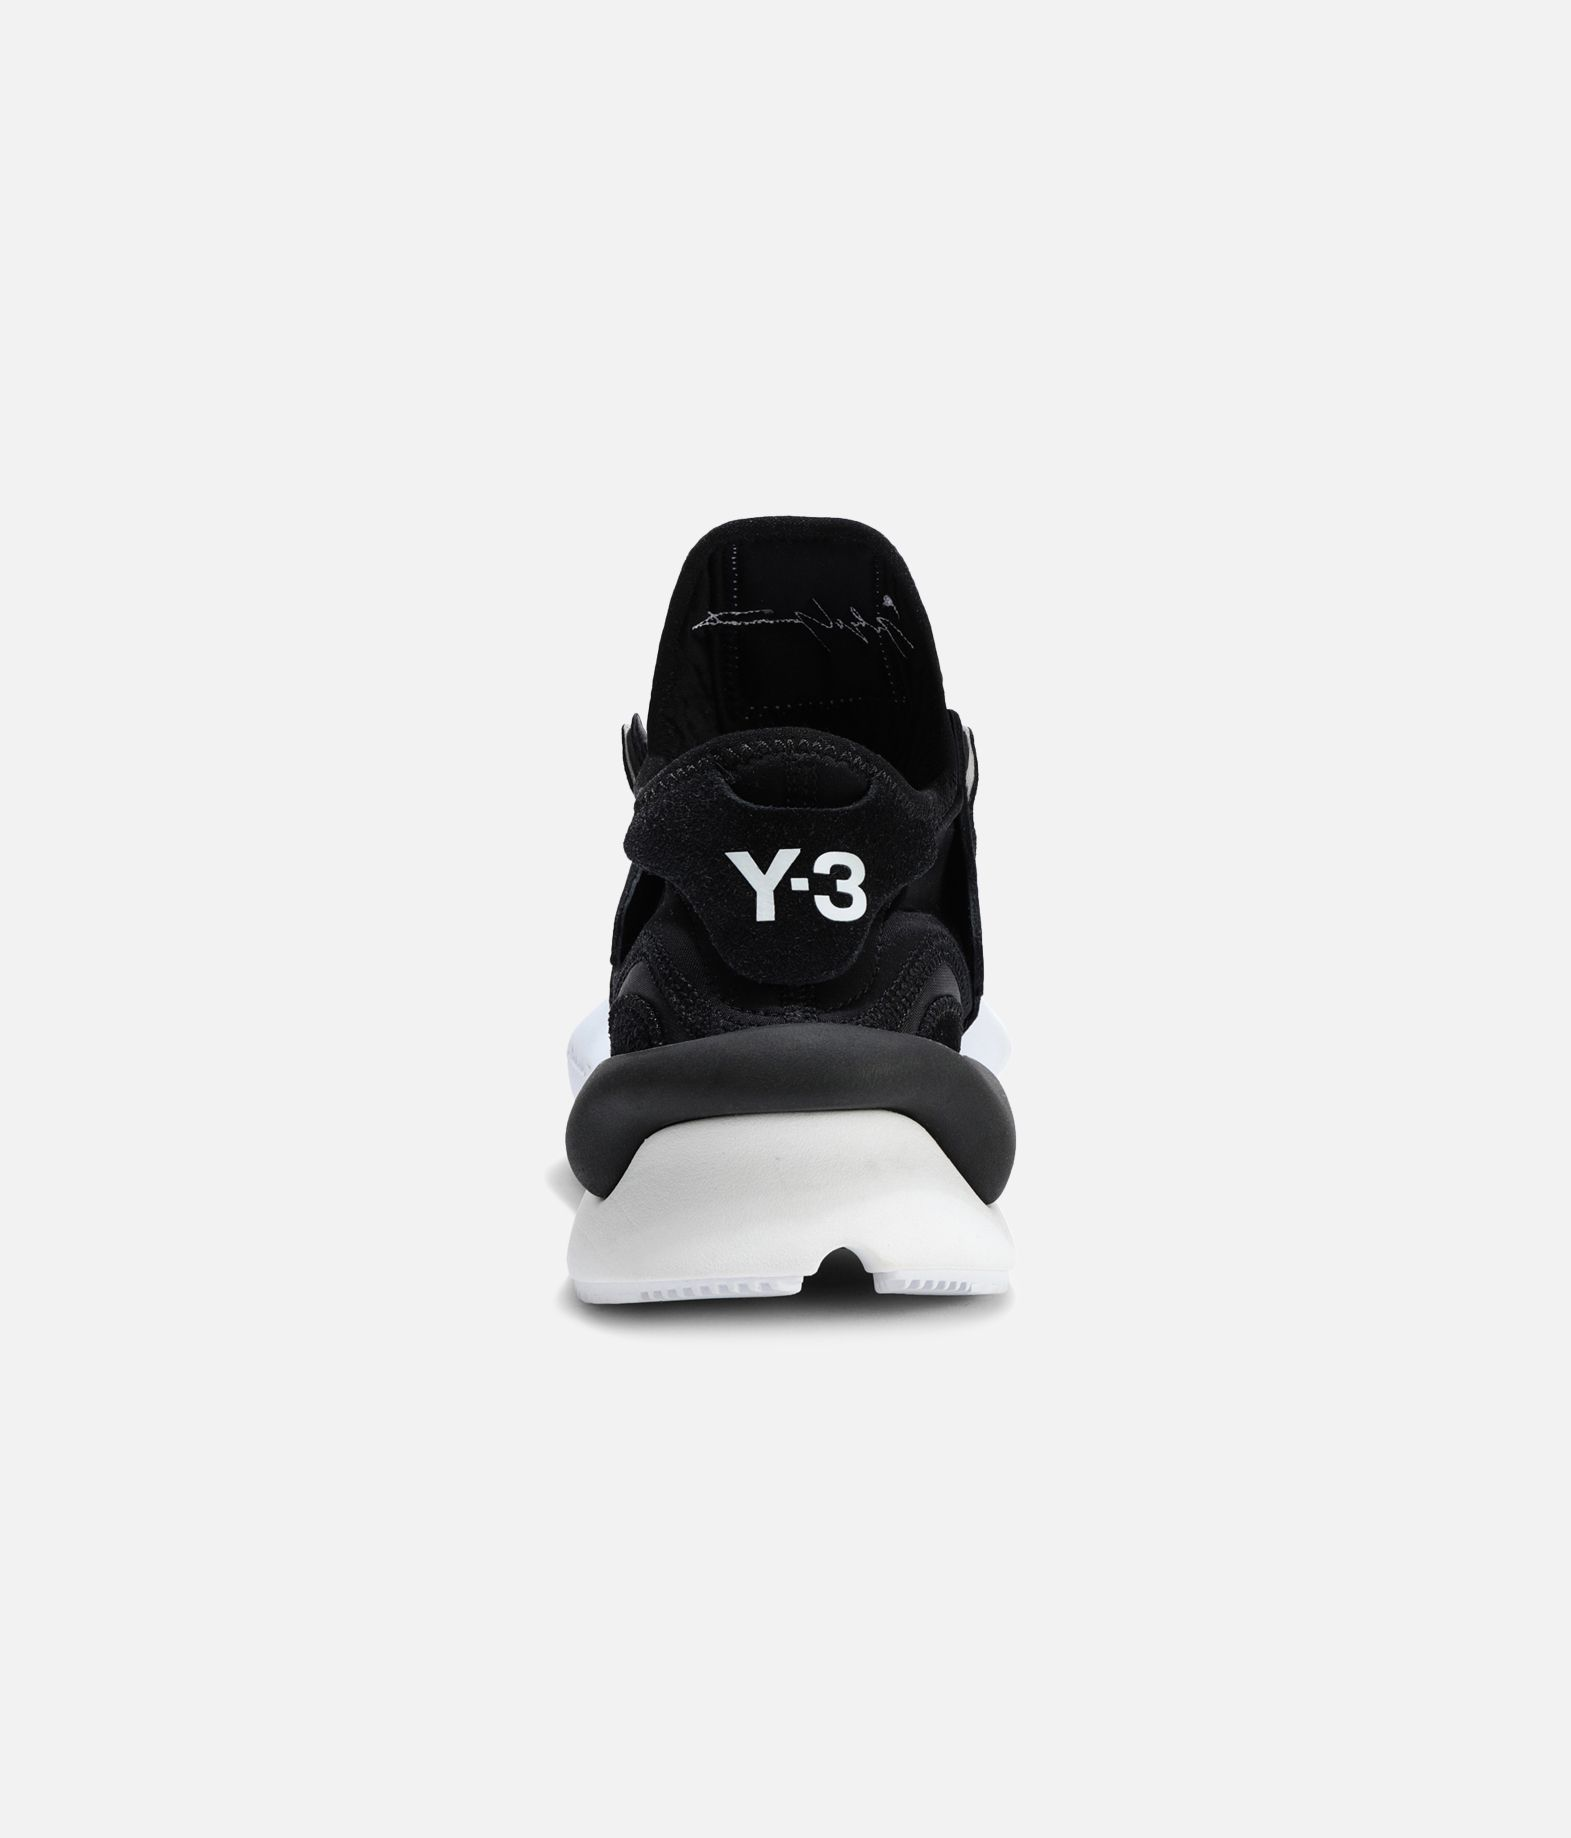 Y-3 Y-3 Kaiwa High-top sneakers E r